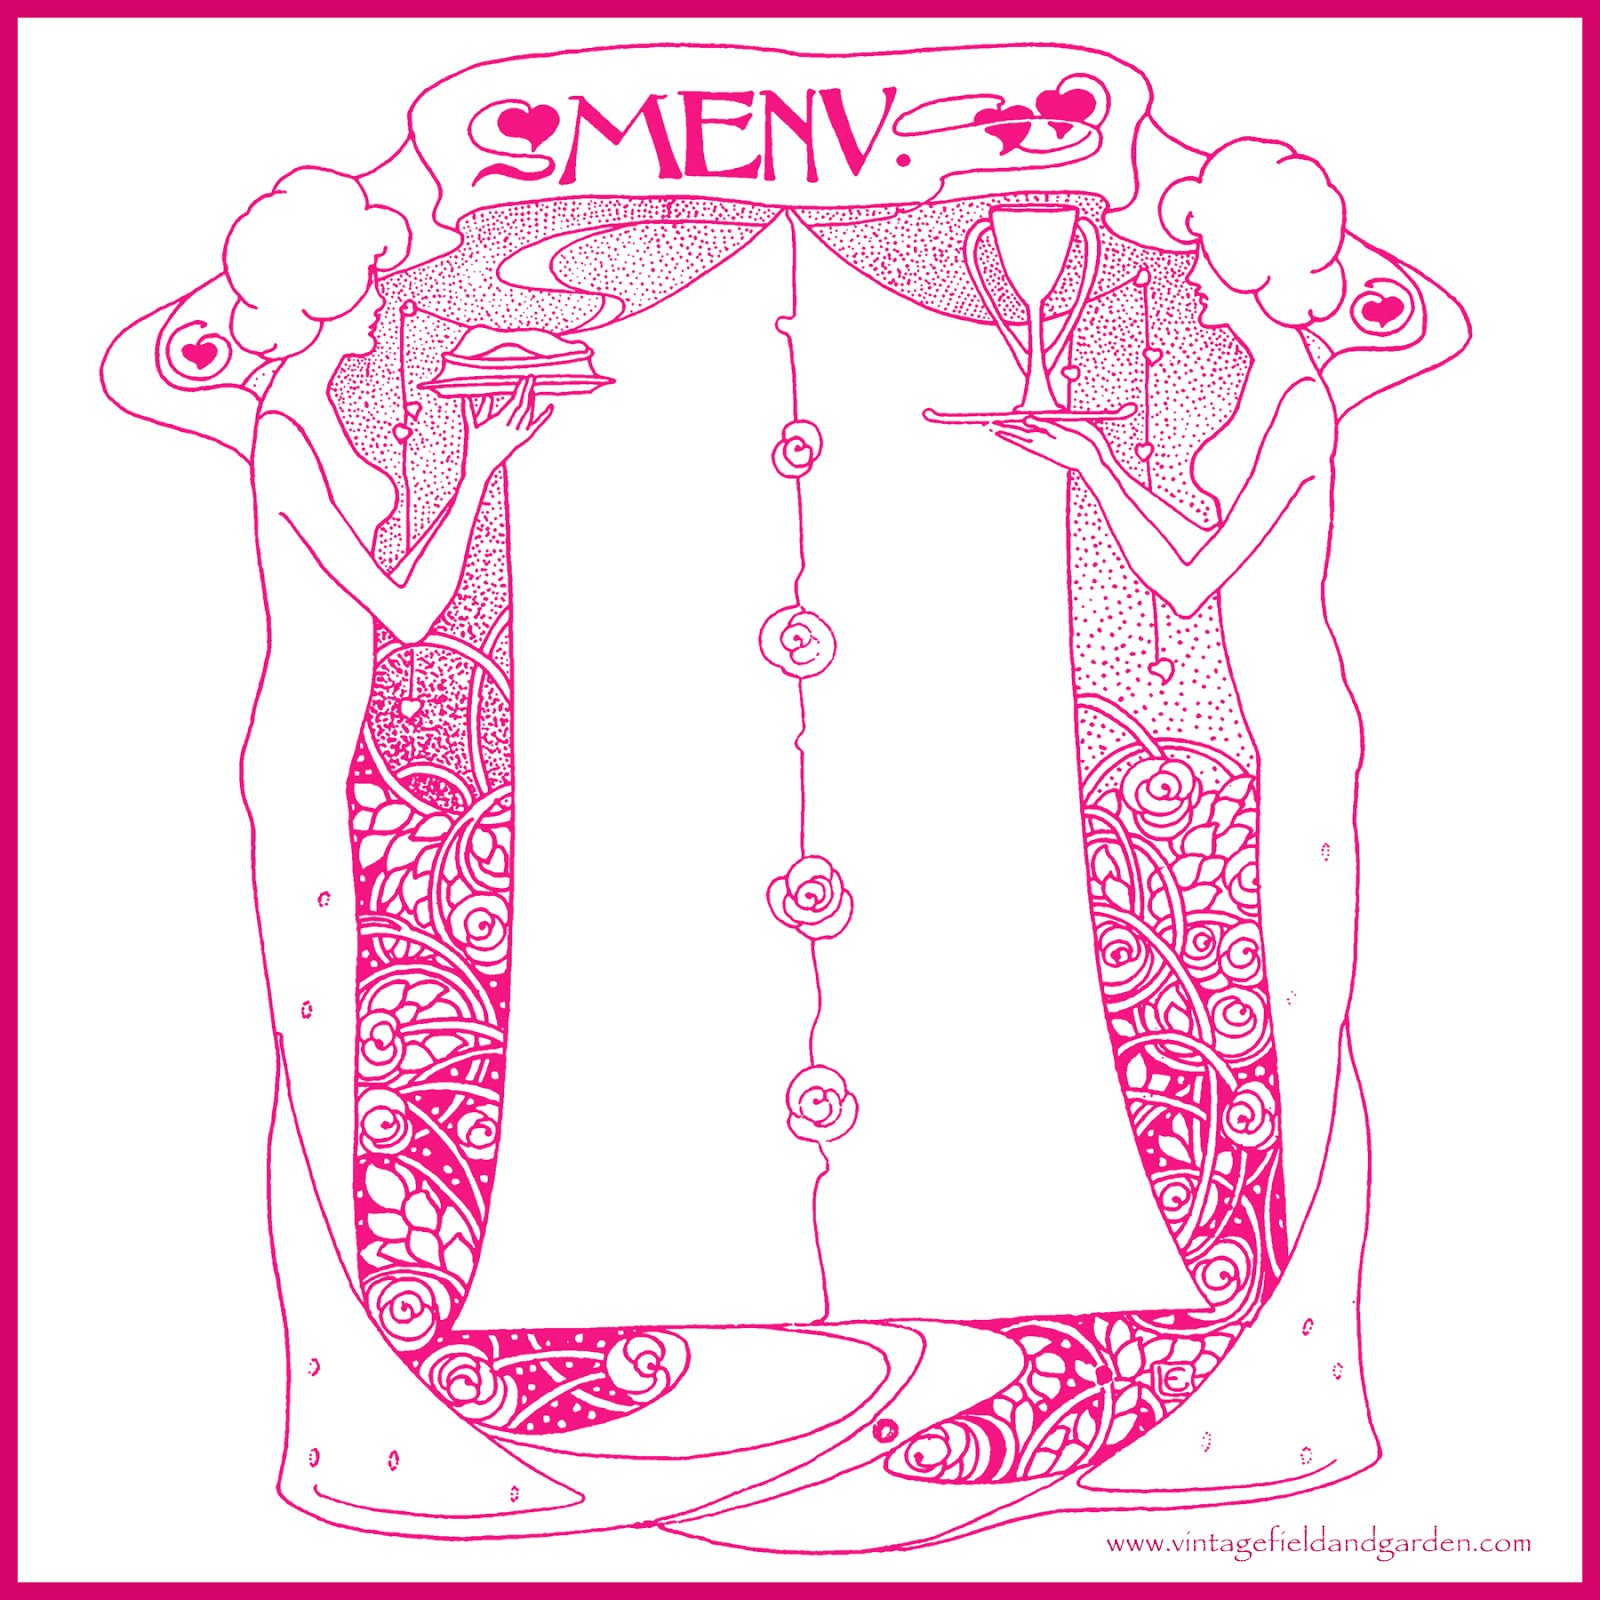 ... Templates: 1902 Art Nouveau Ladies with Food & Drink Menu Design